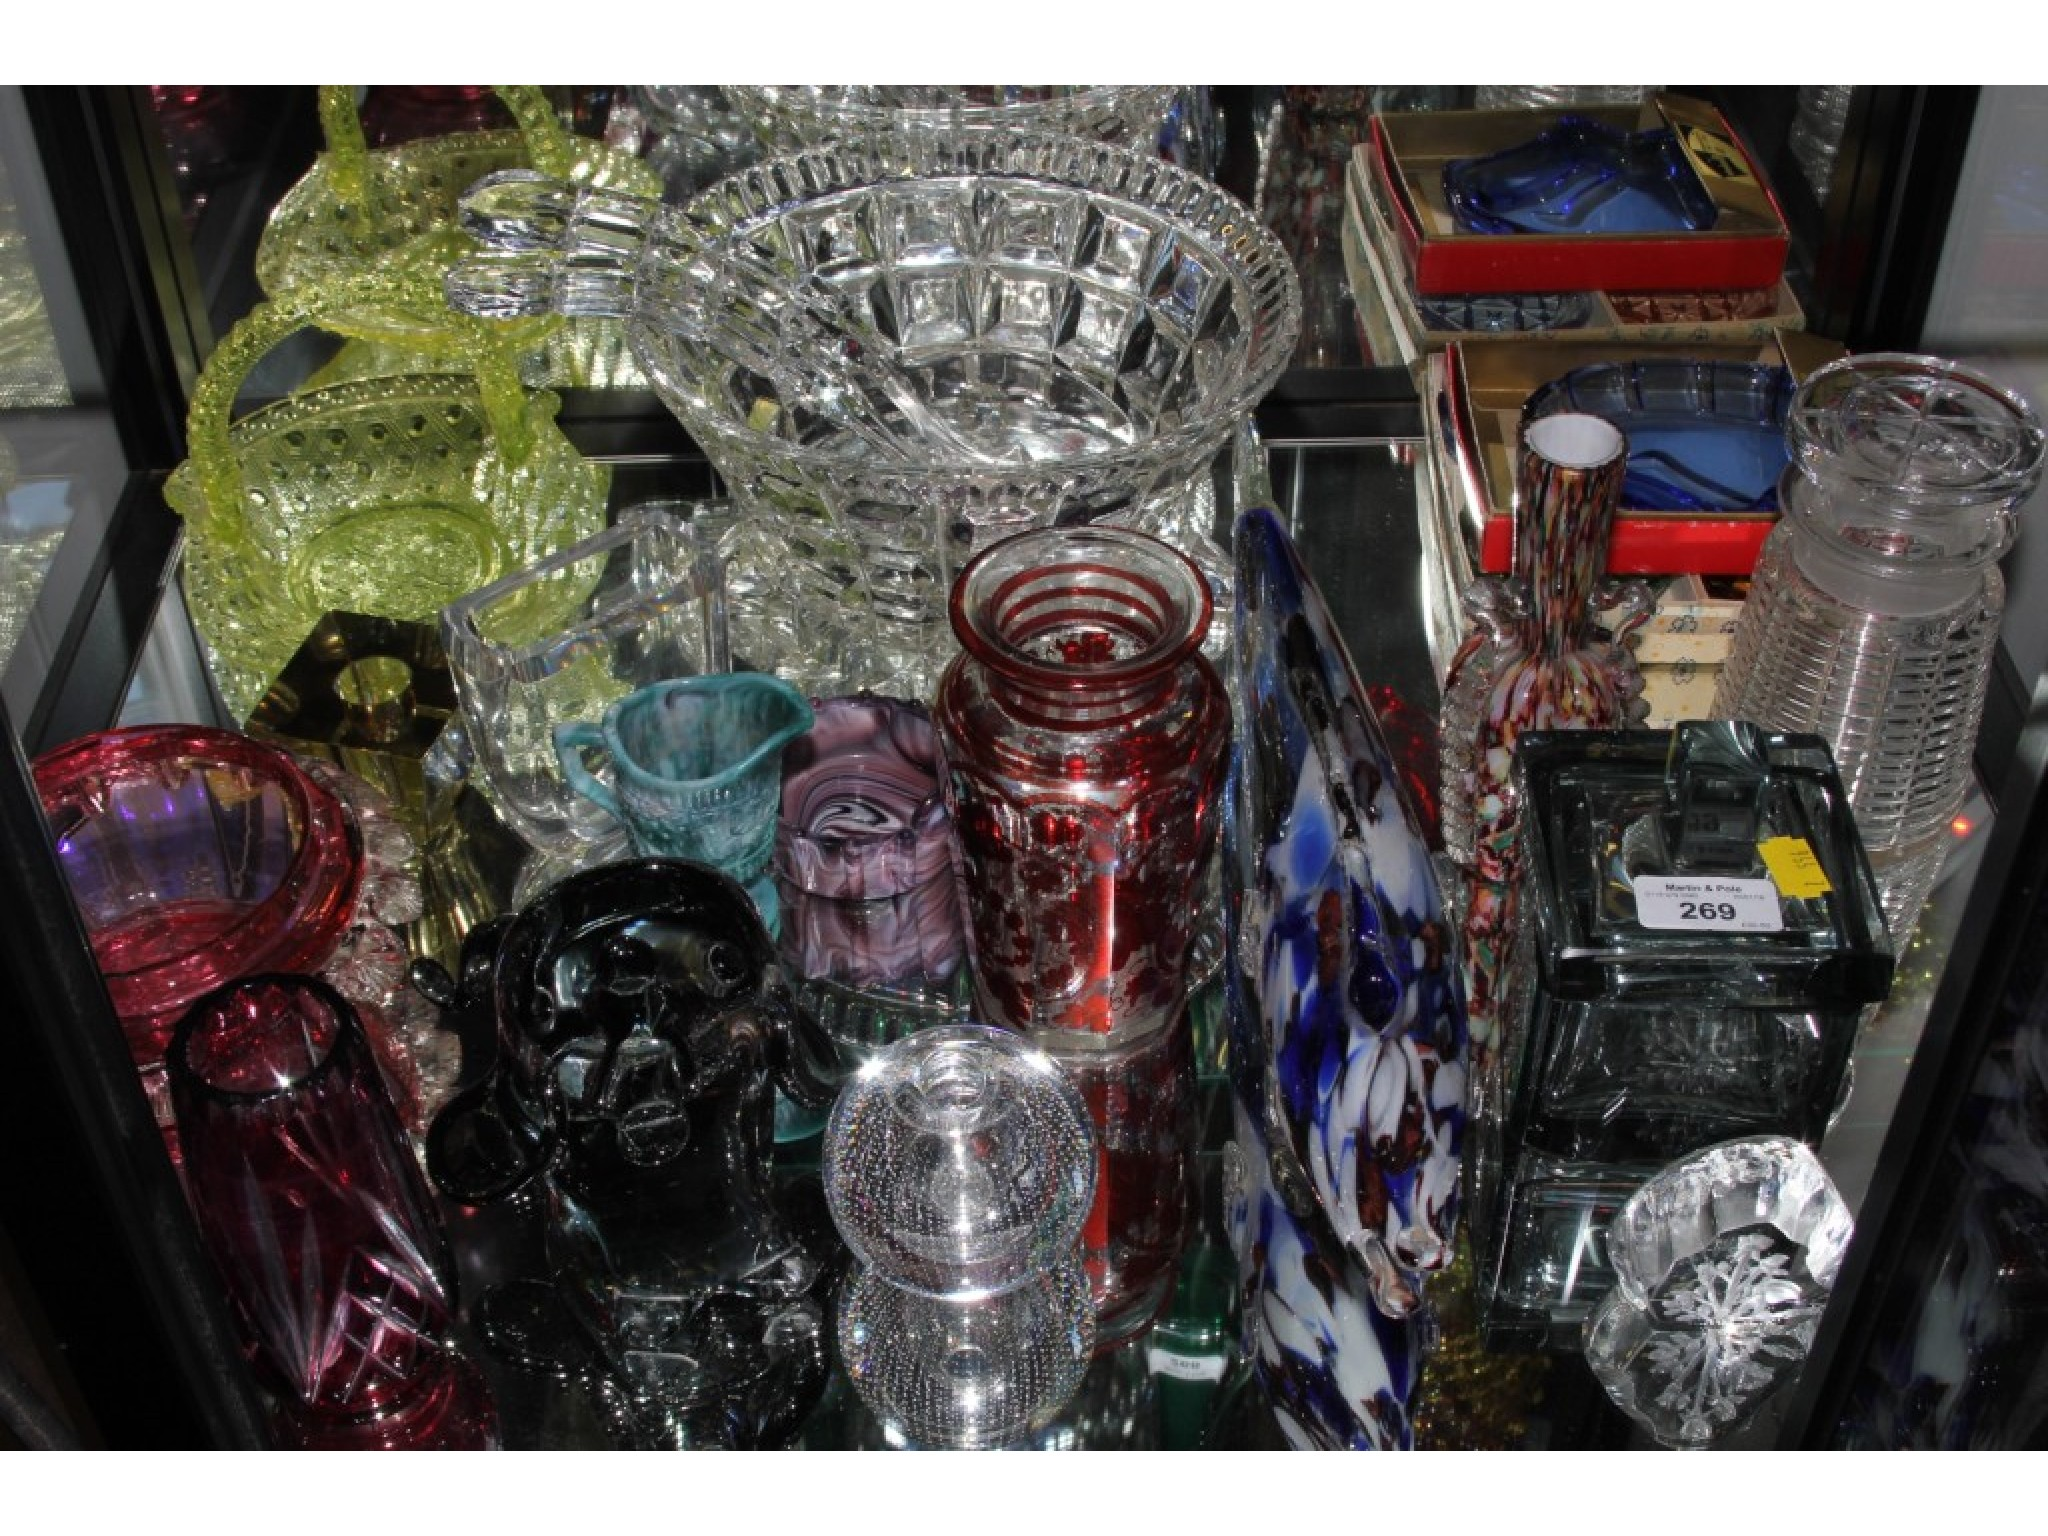 A collection of various glassware, including slag glass, cranberry glass and Murano